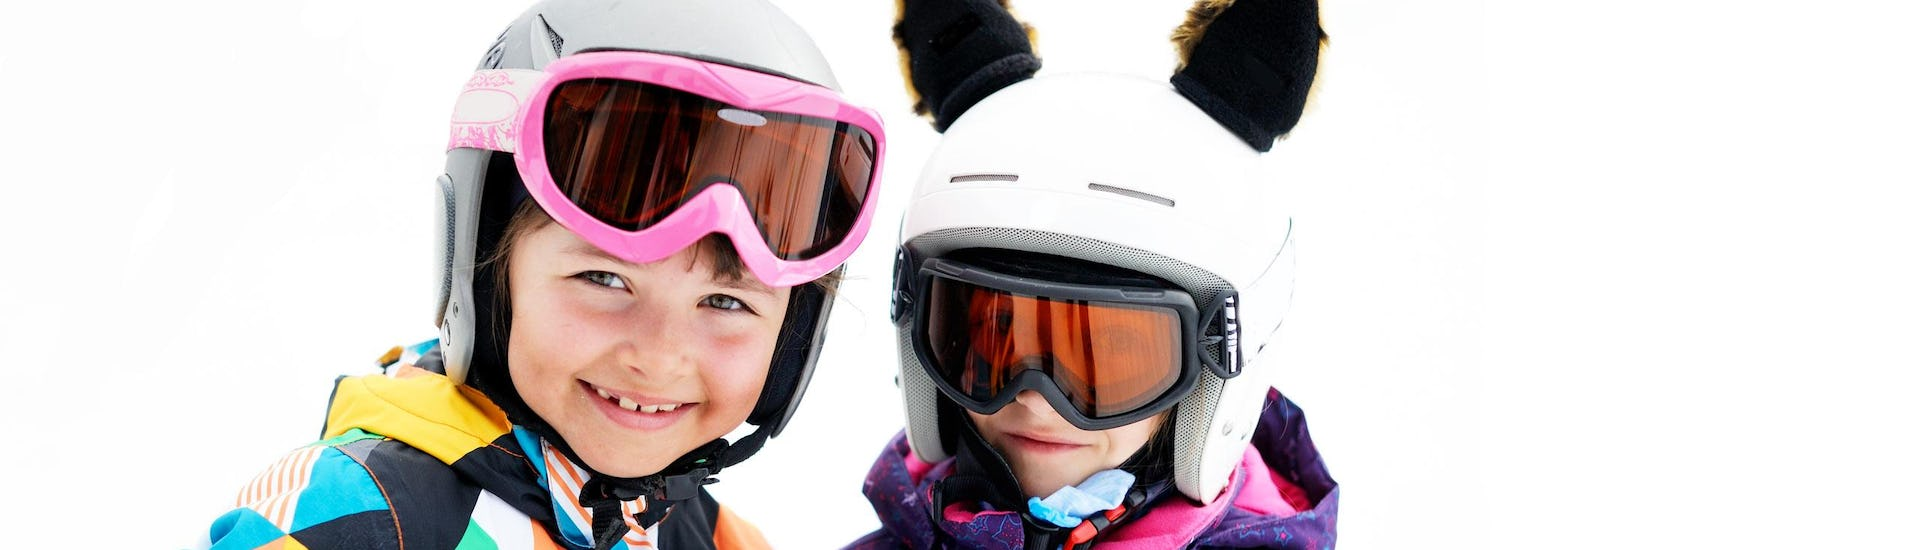 Two young children smiling at the camera during one of the Ski Lessons for Teens (14-17 years) - Advanced organised by Skischule Silvretta Galtür.